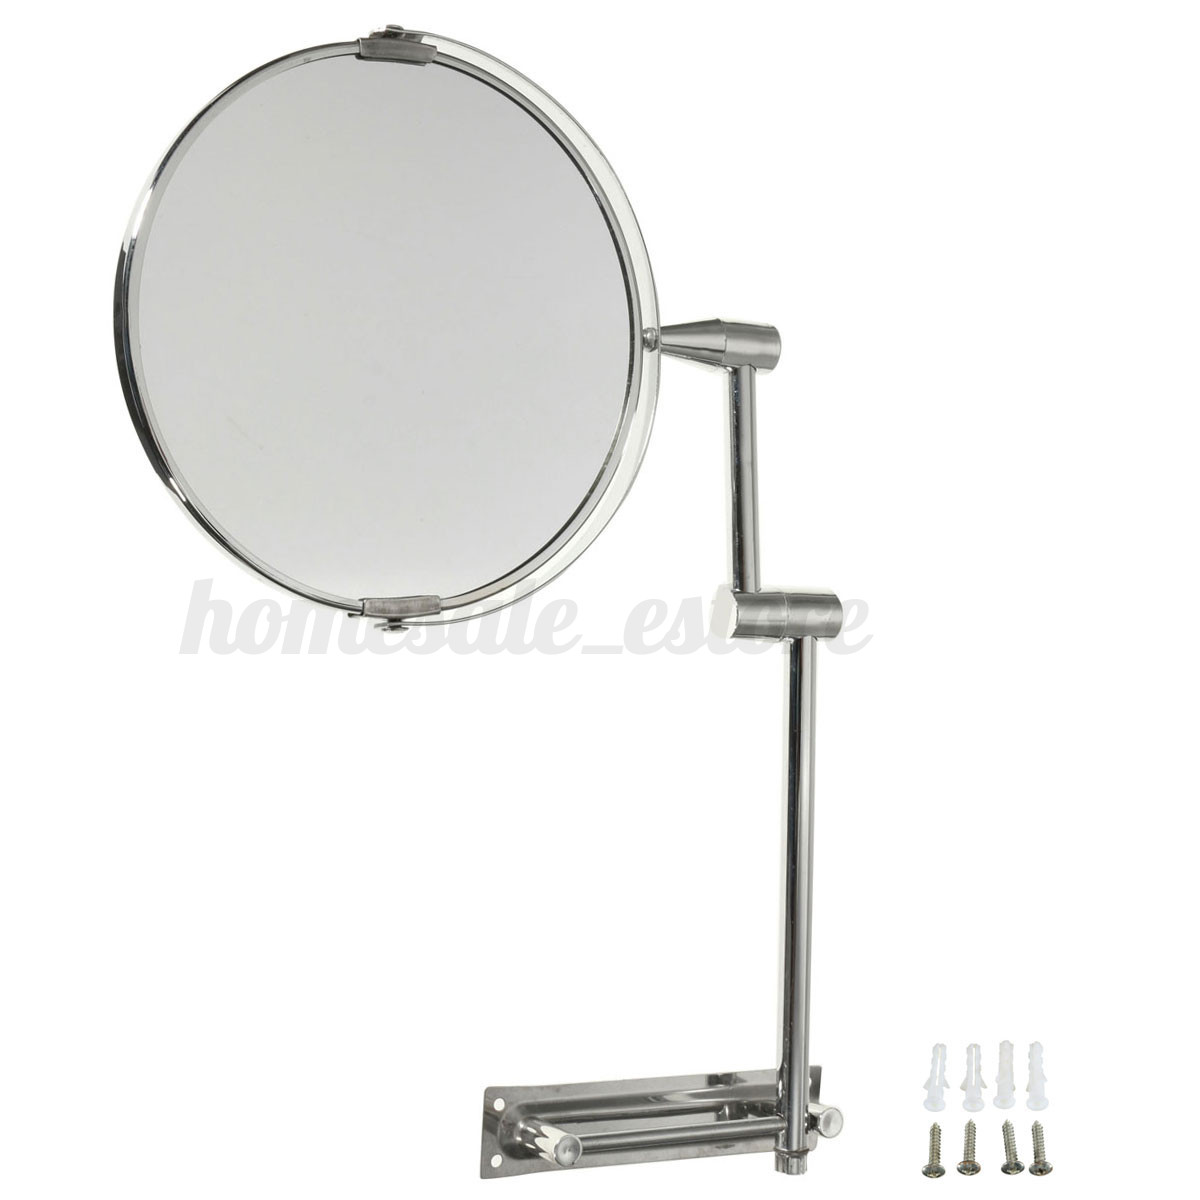 Extending Double sided Wall Mounted Mirror Bathroom